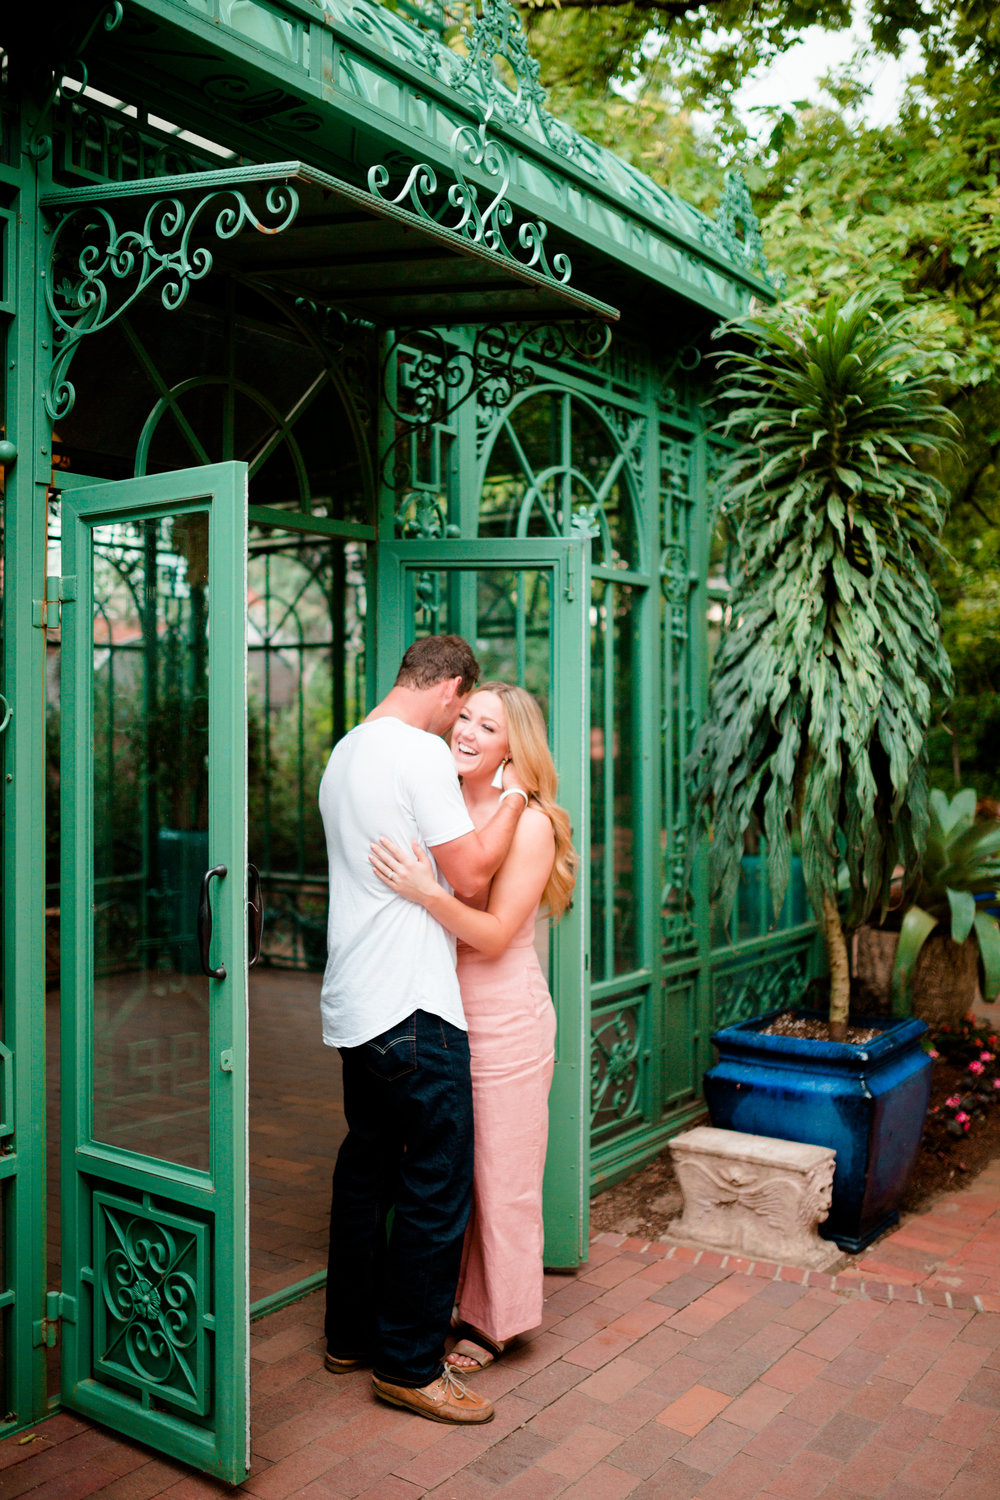 Sweet_Like_Pie_Greenberg_Denver_Botanic_Gardens_Engagement_Photos-33.jpg